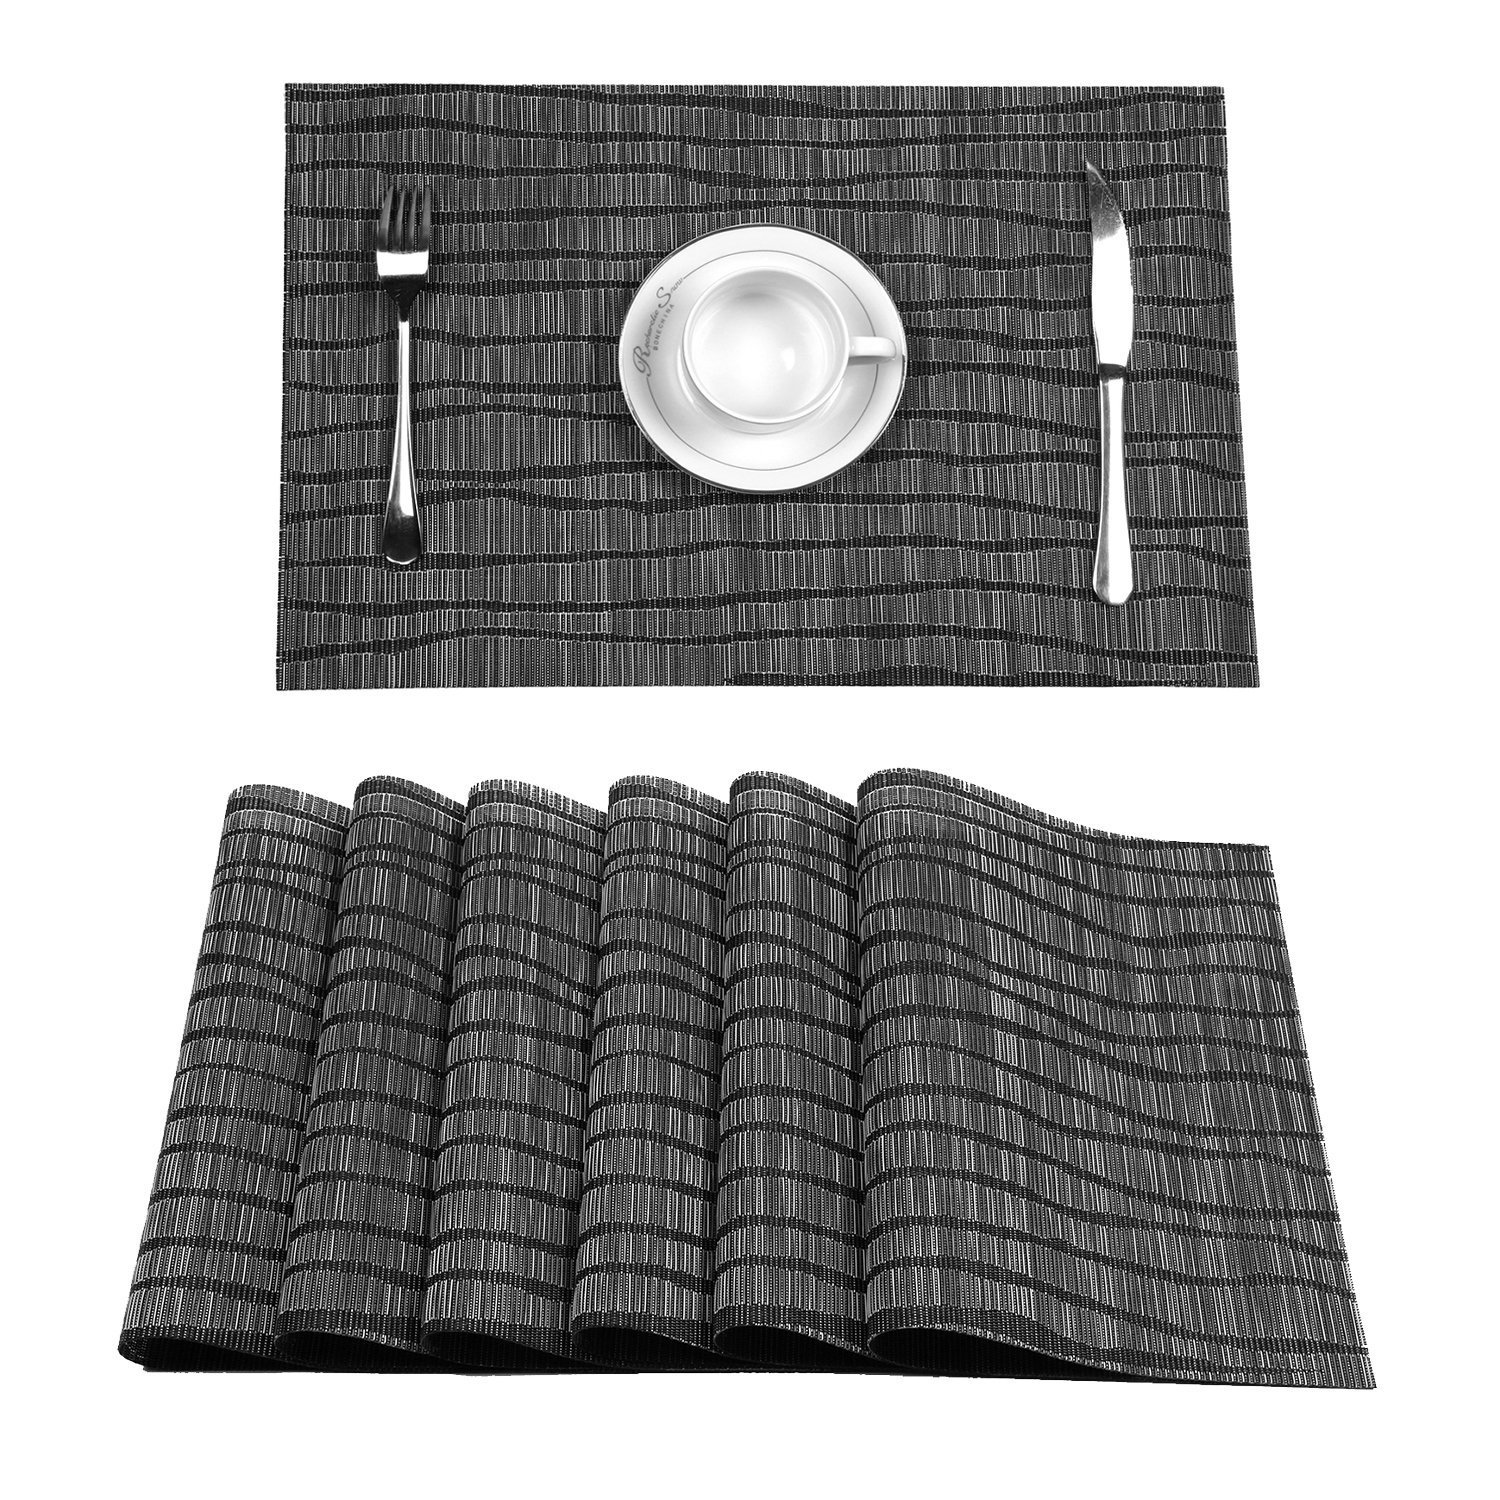 Topotdor Placemats set of 6 PVC Non-slip Insulation Stain-resistant vertical stripes Placemats for Home, Kitchen,Office and Outdoor (Set of 6, Black) by Topotdor (Image #2)